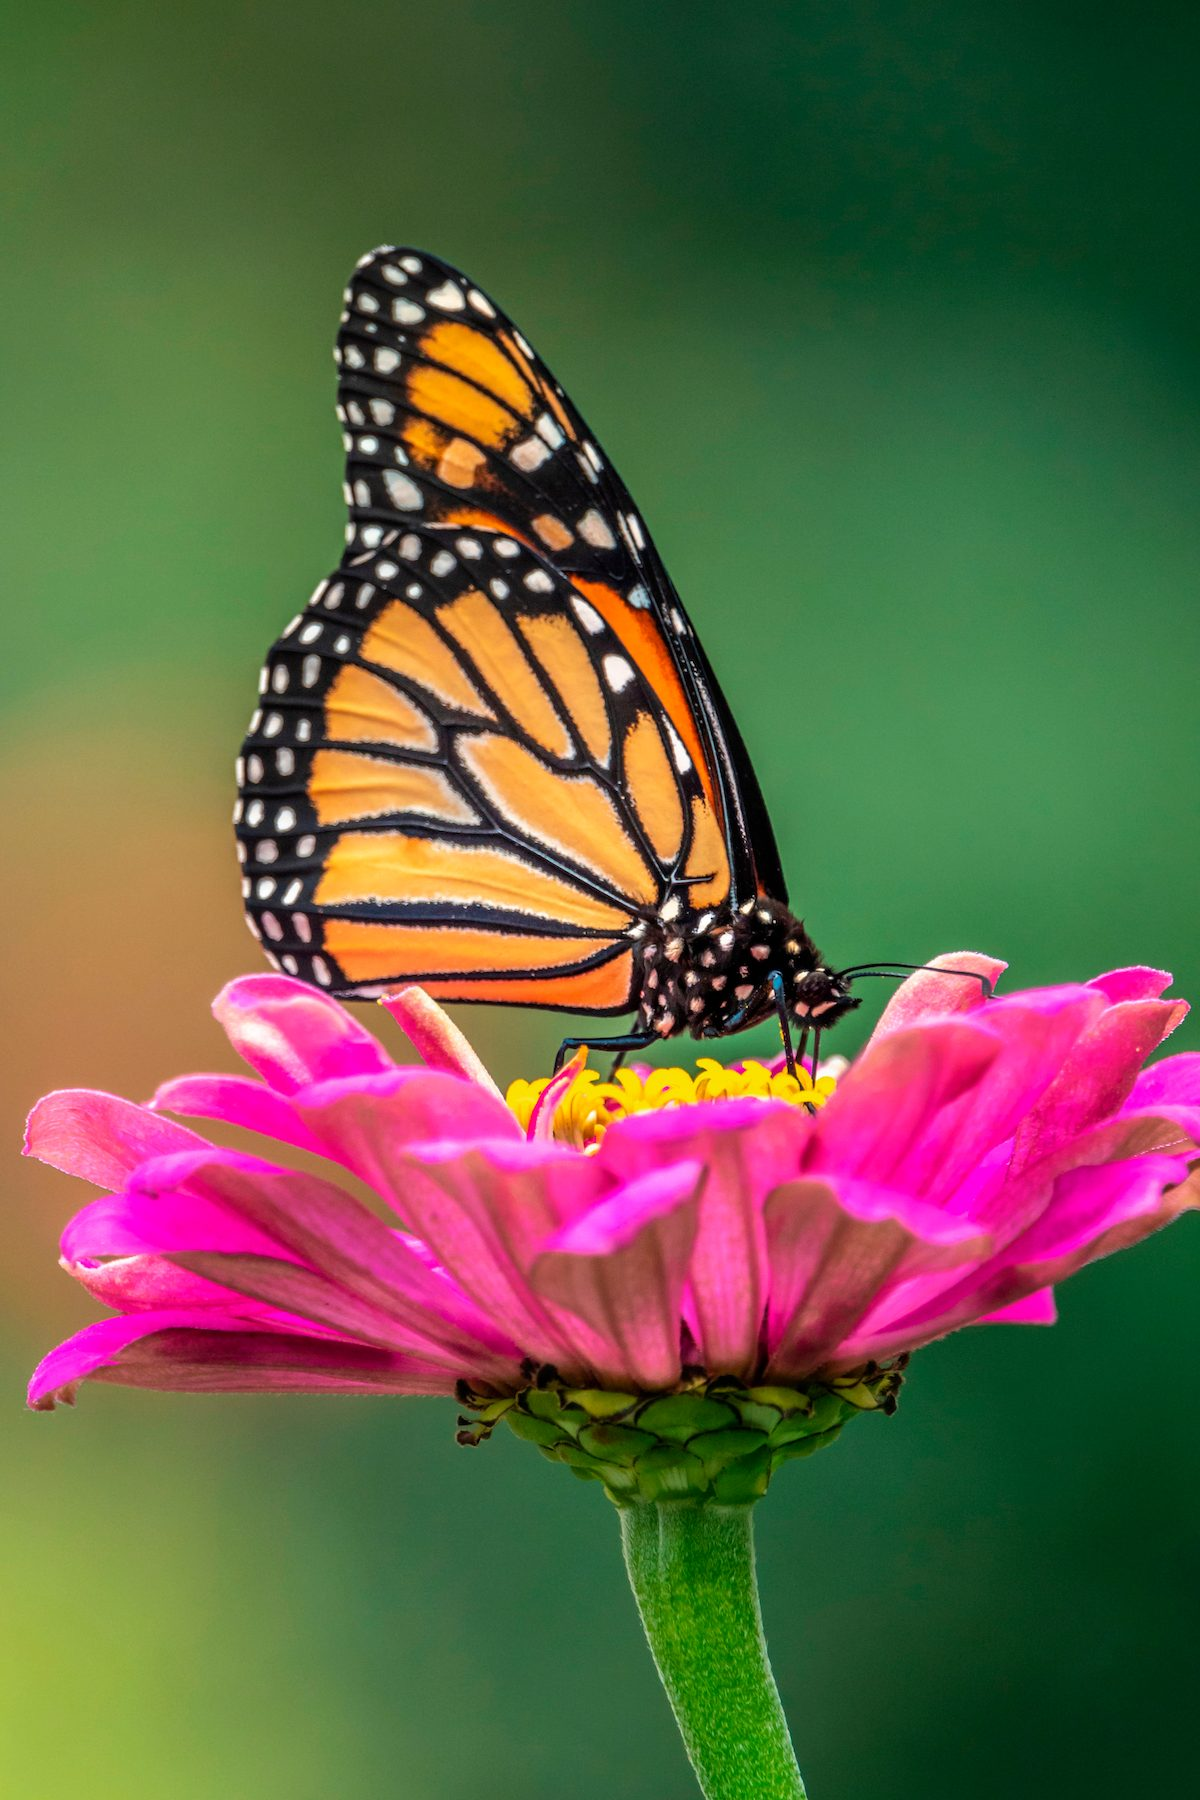 Monarch butterfly poses on a flower.